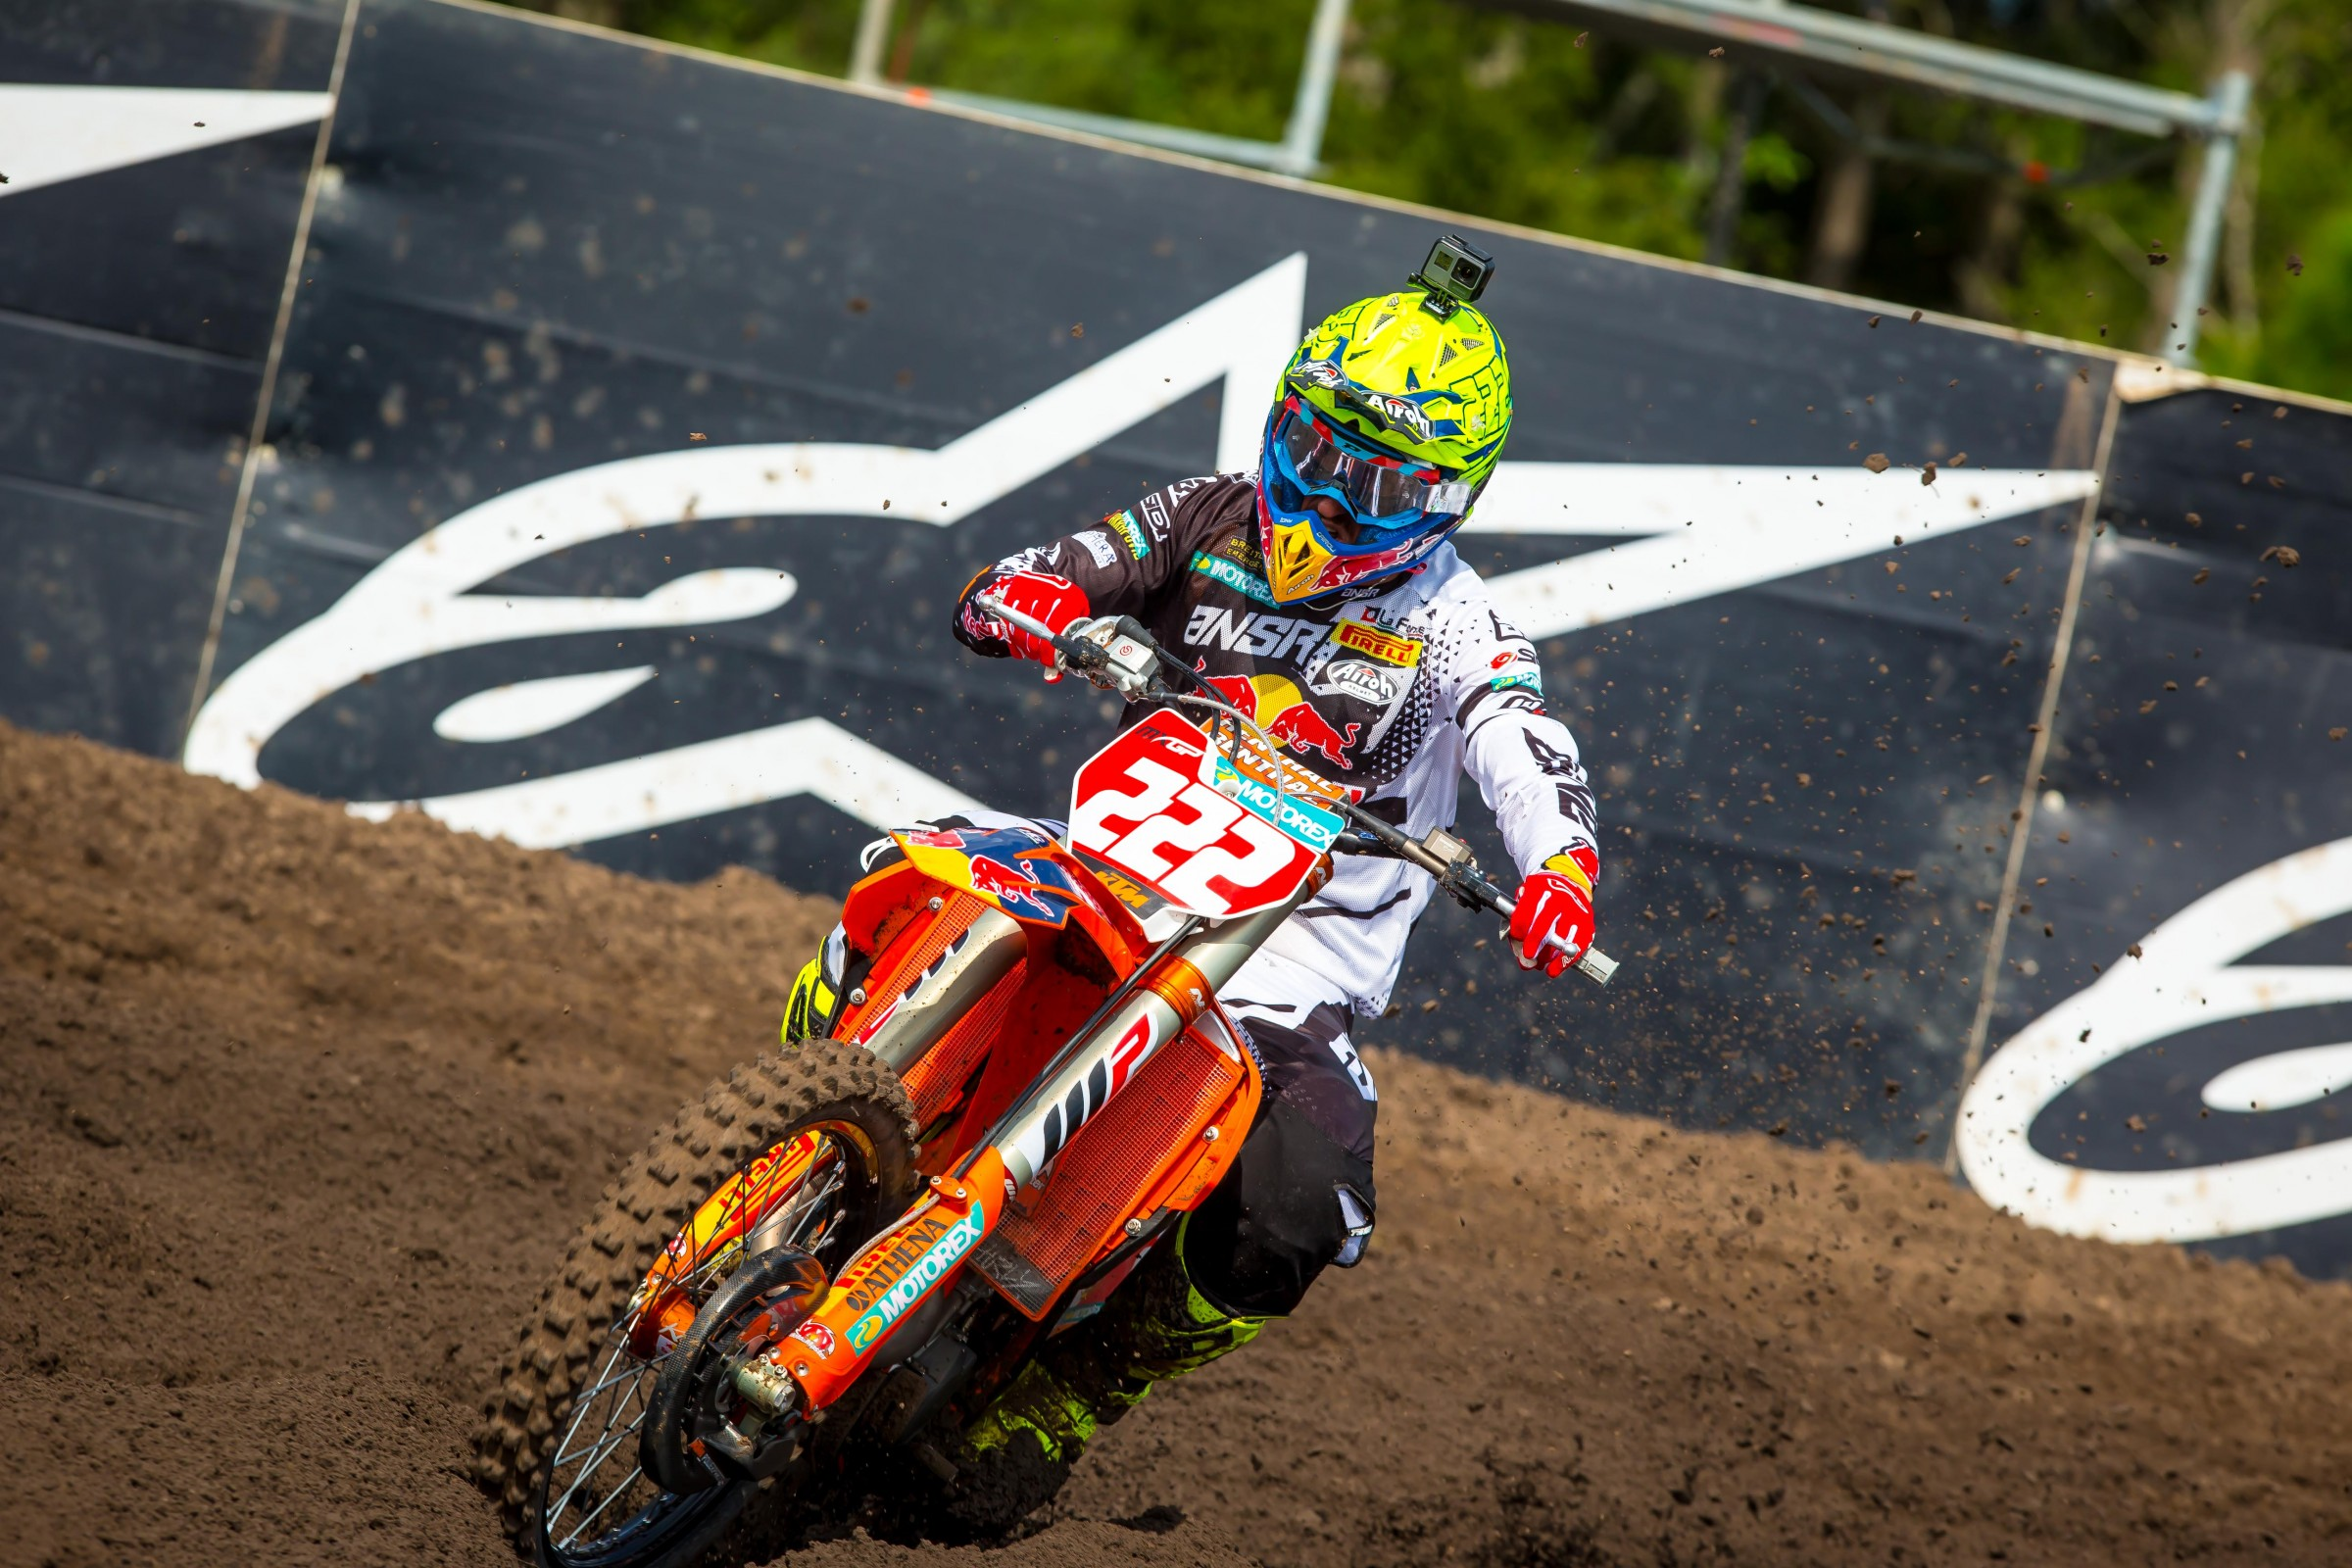 Antonio Cairoli finished third overall in MXGP.